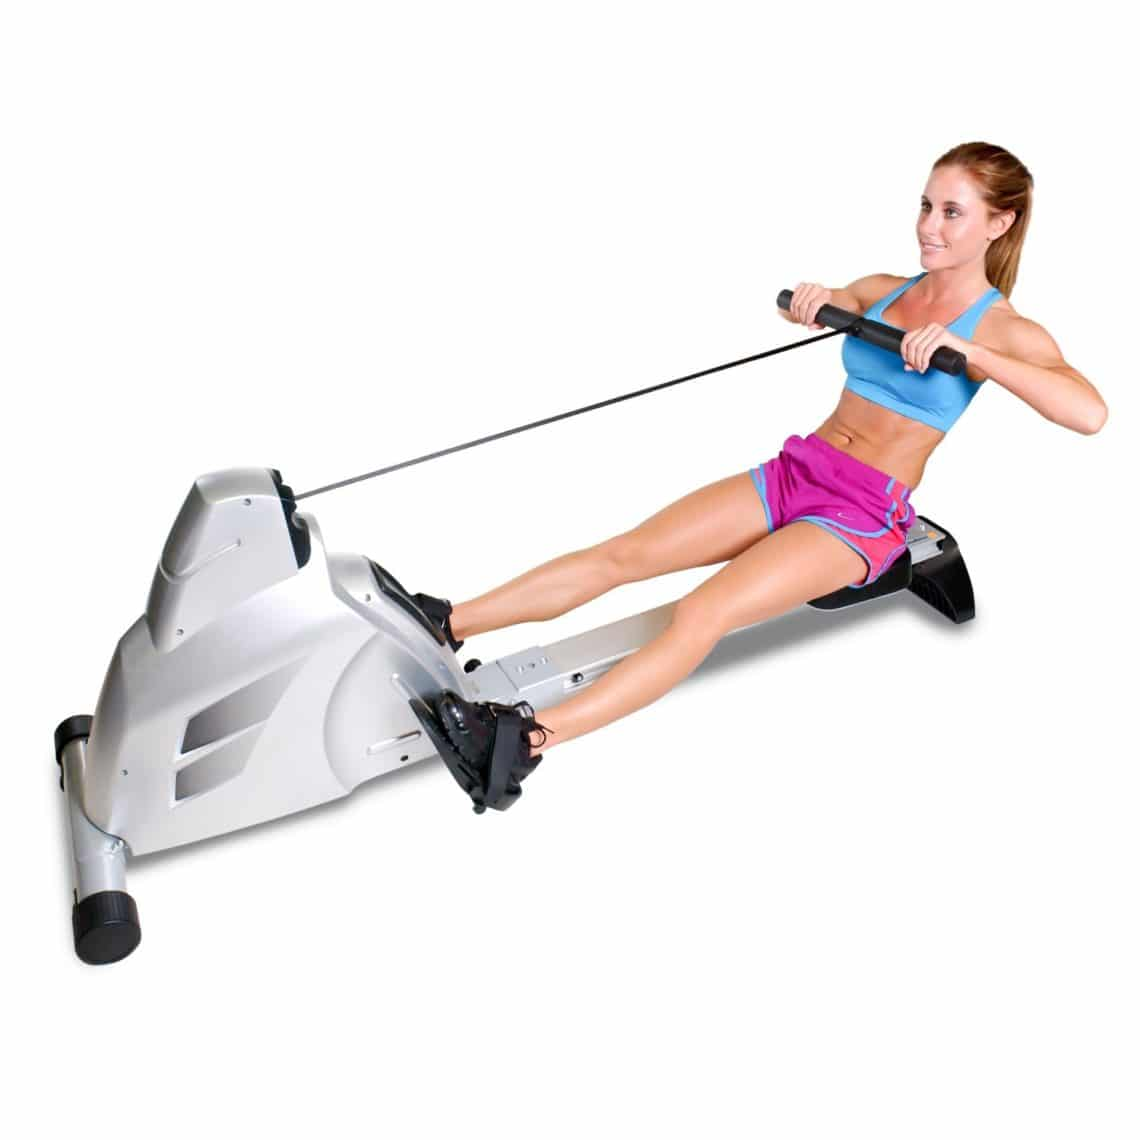 Best Rowing Machine Reviews for 2016 – Comparisons and Rating